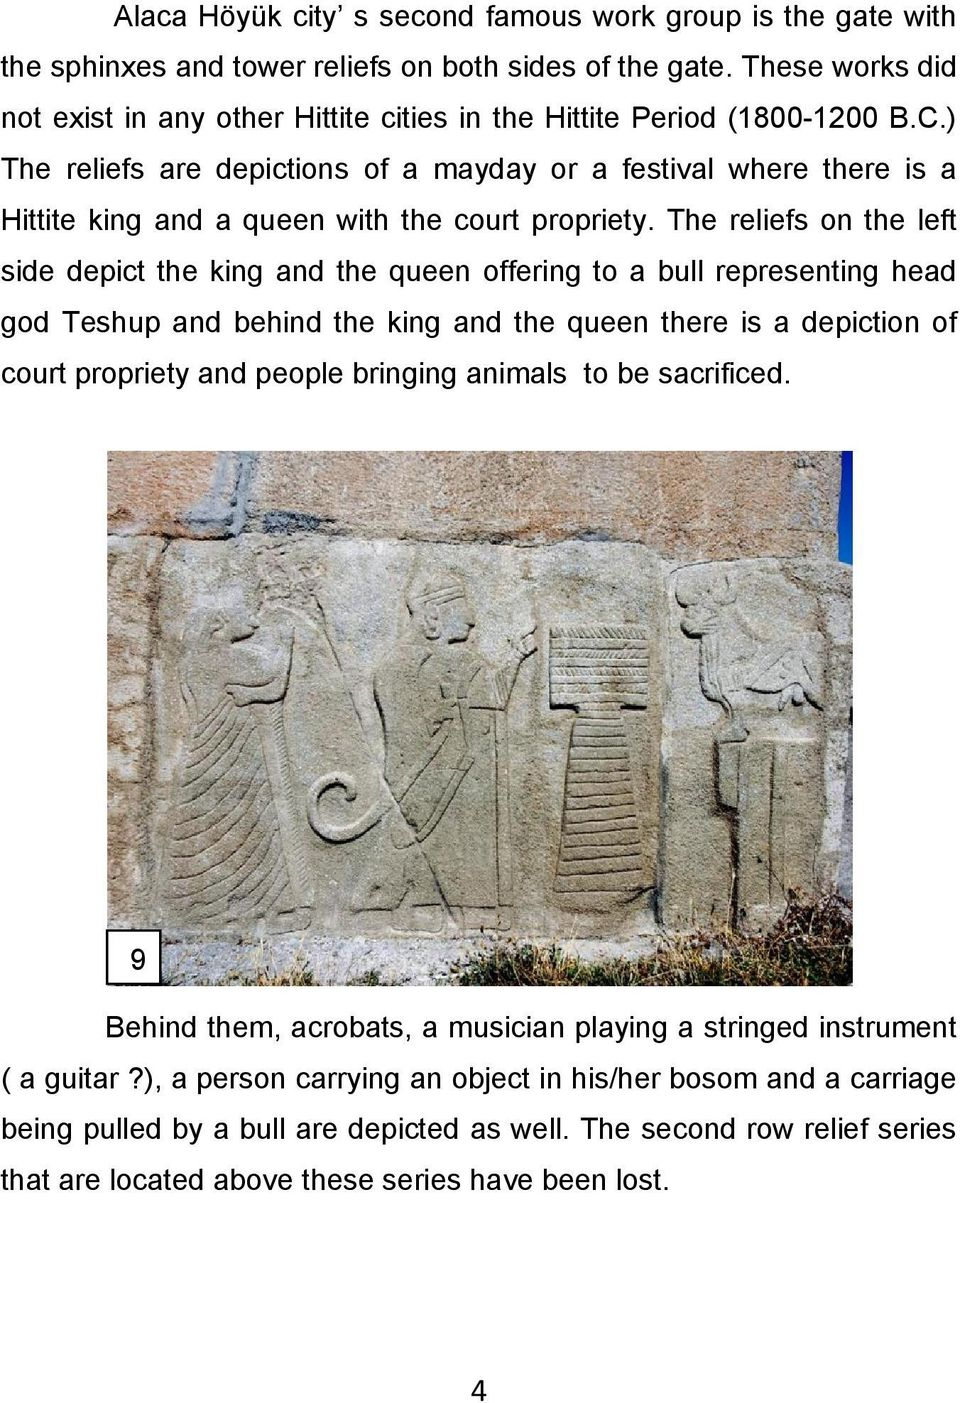 ) The reliefs are depictions of a mayday or a festival where there is a Hittite king and a queen with the court propriety.